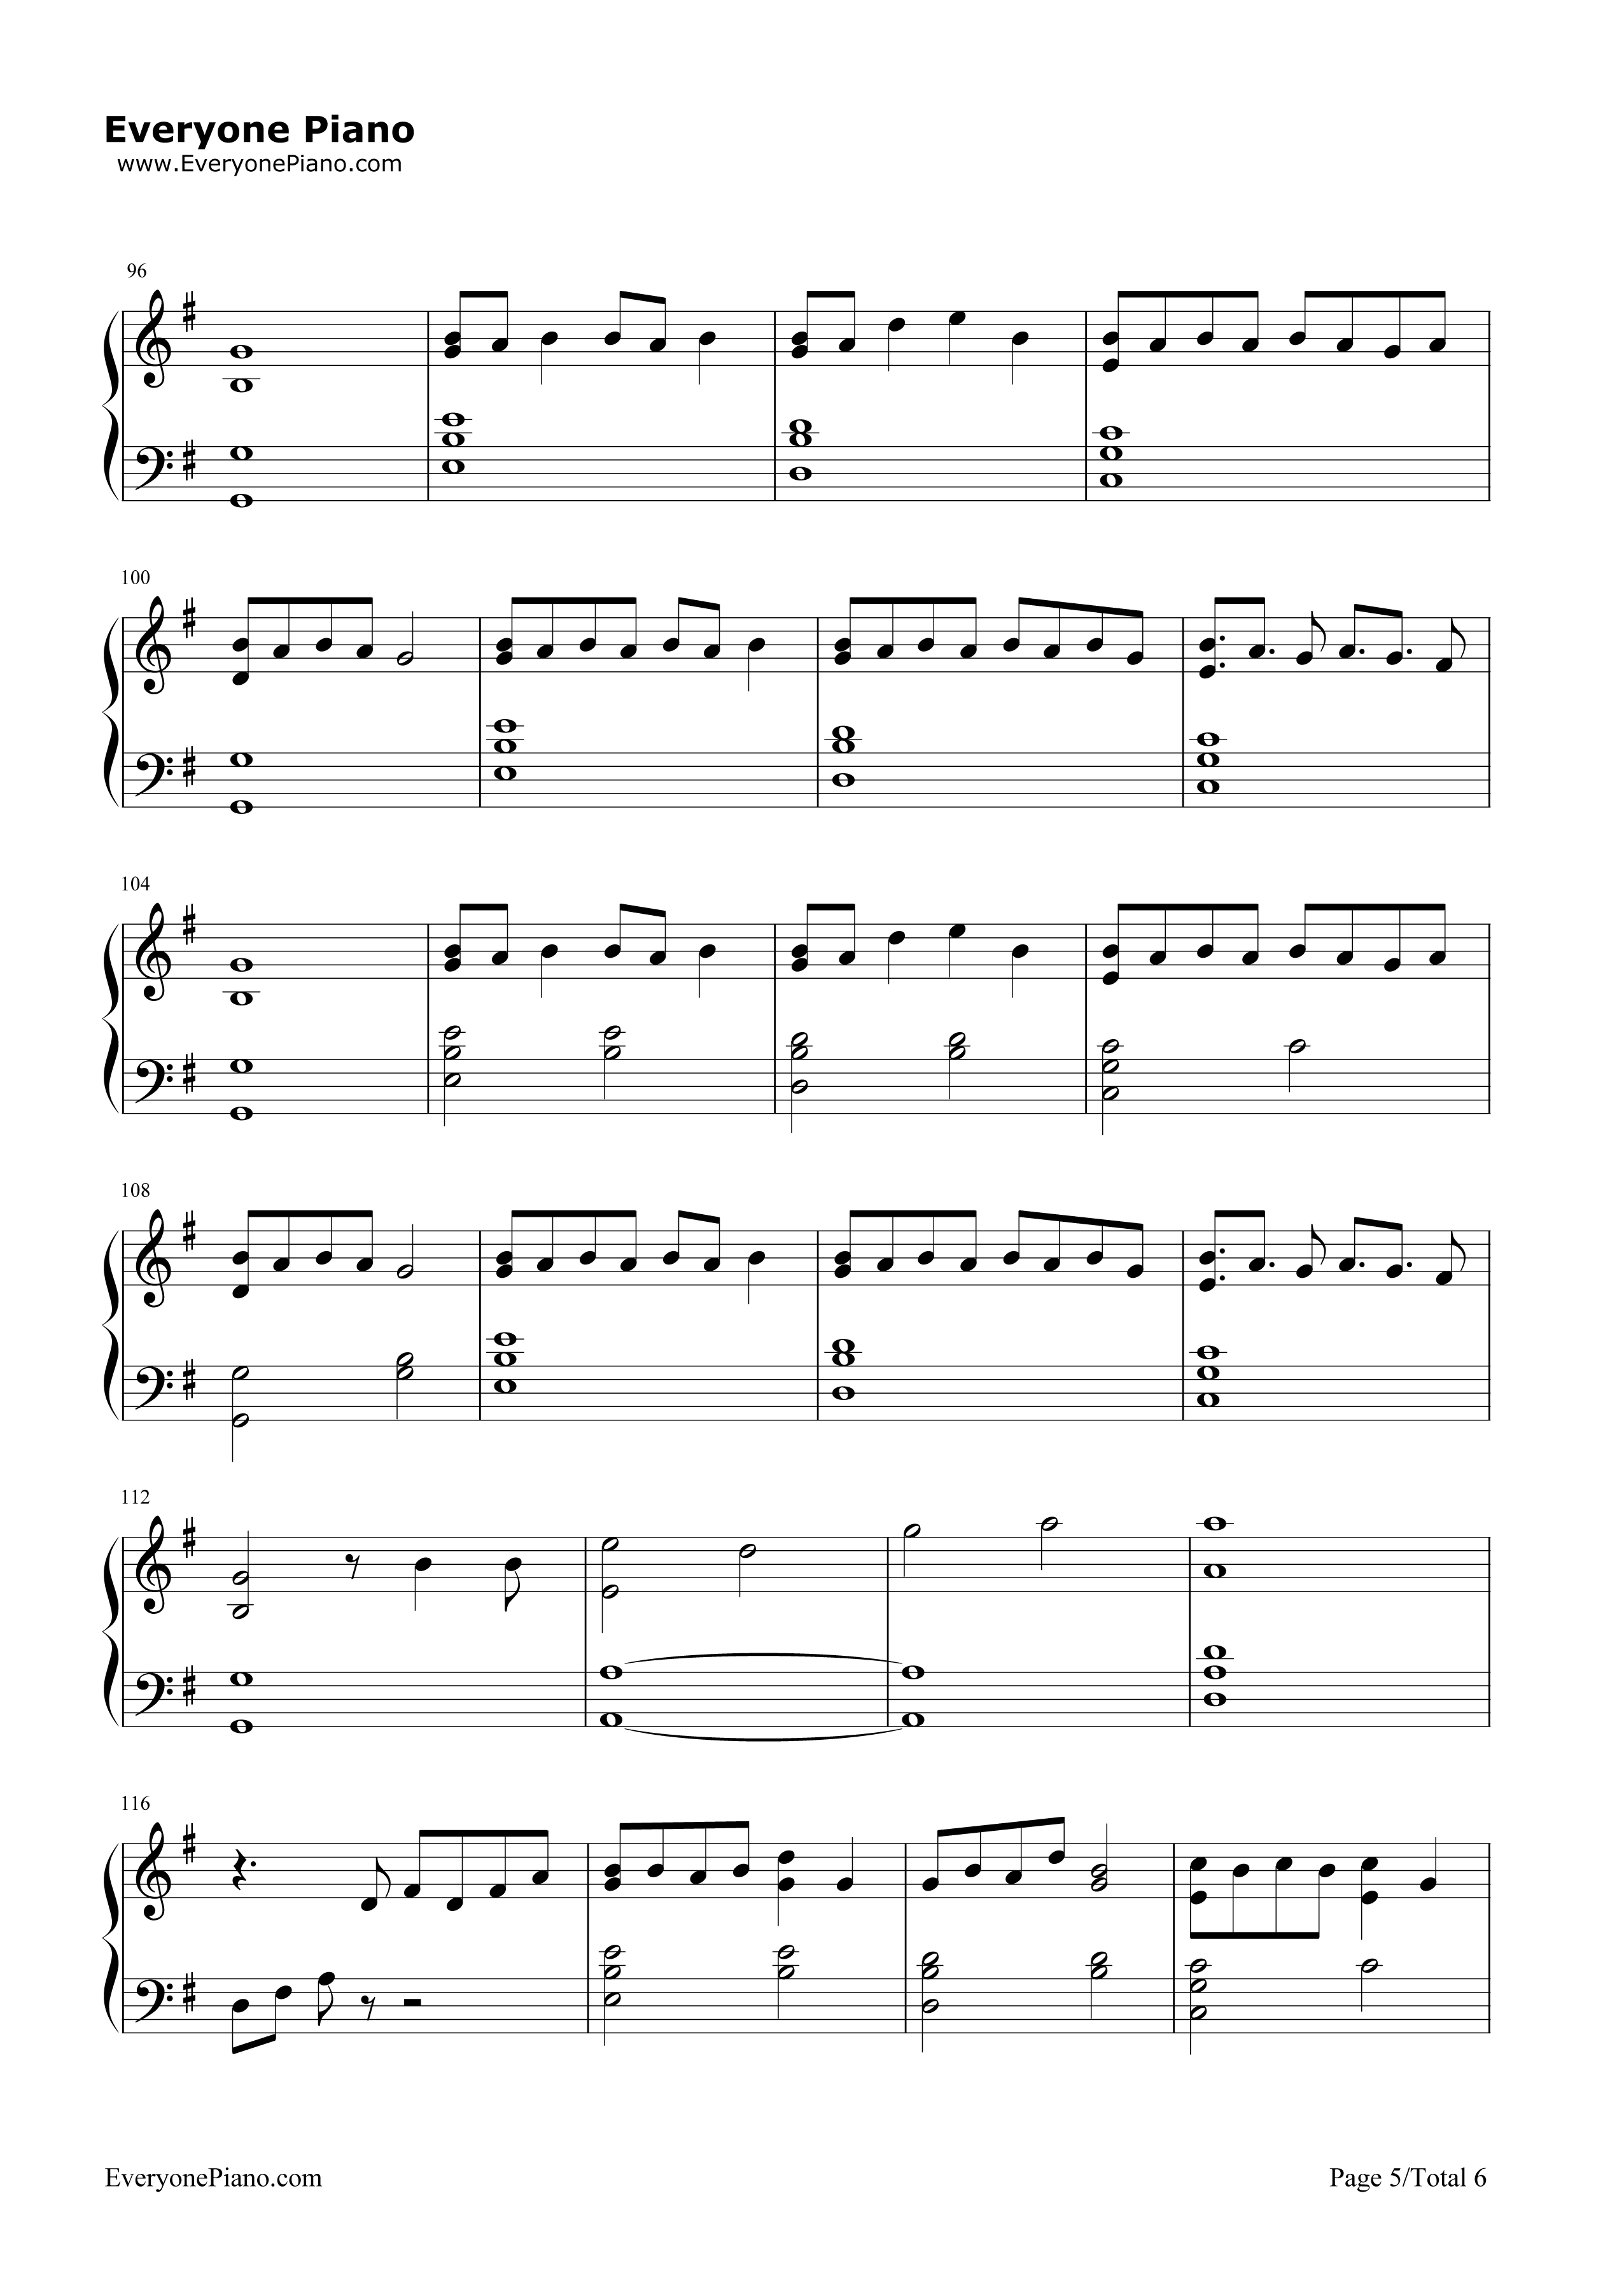 Lost boy ruth b free piano sheet music piano chords lost boy ruth b stave preview 5 hexwebz Images